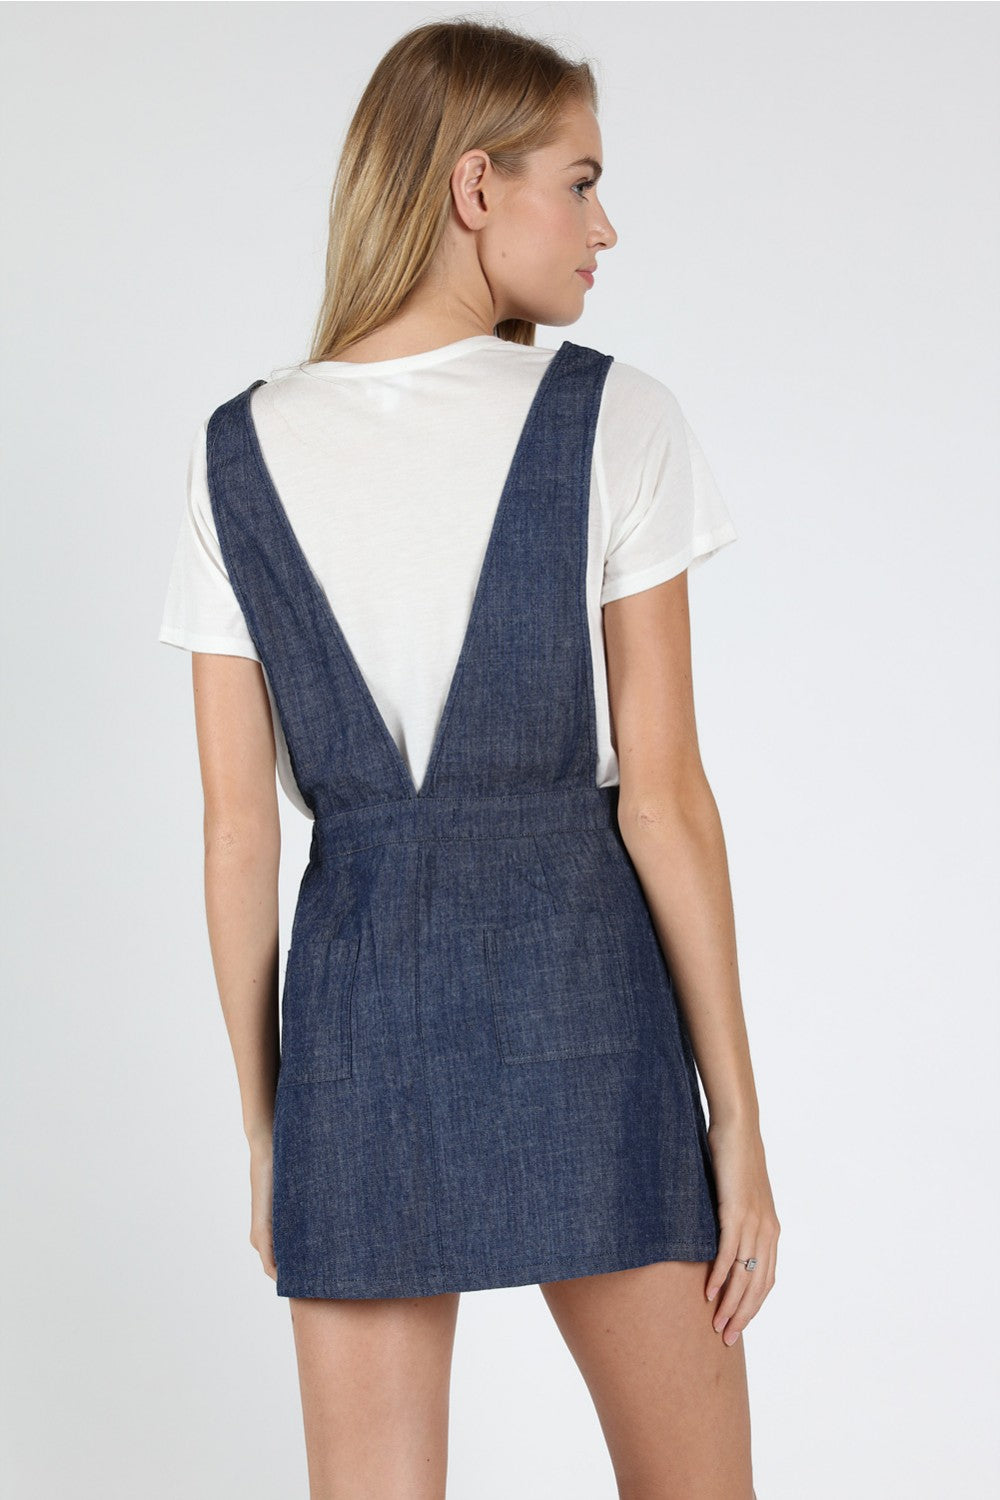 School Girl Denim Dress